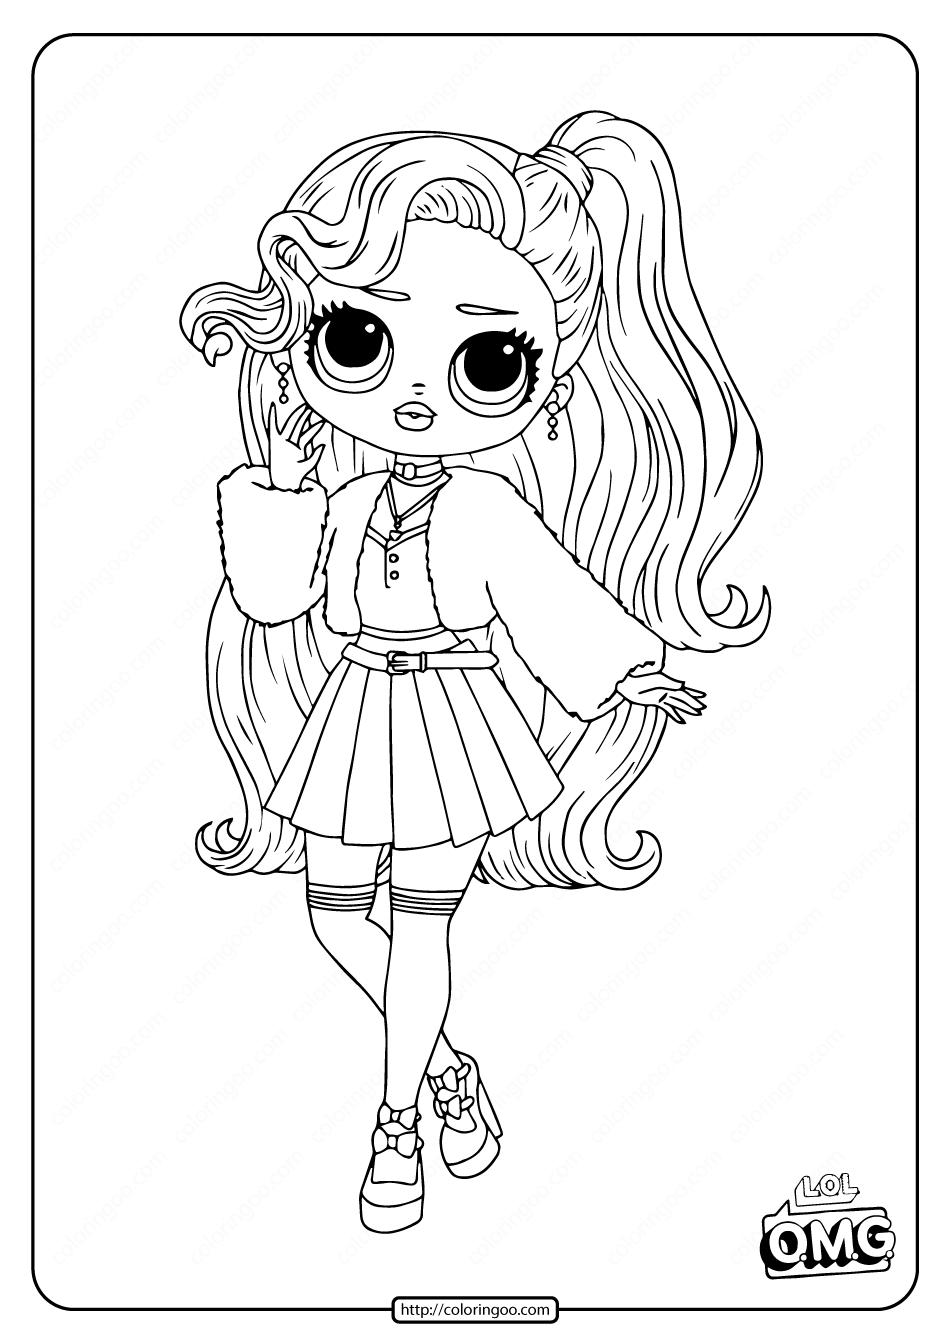 Lol Surprise Coloring Sheet Horse Coloring Pages Coloring Sheets Lol Dolls